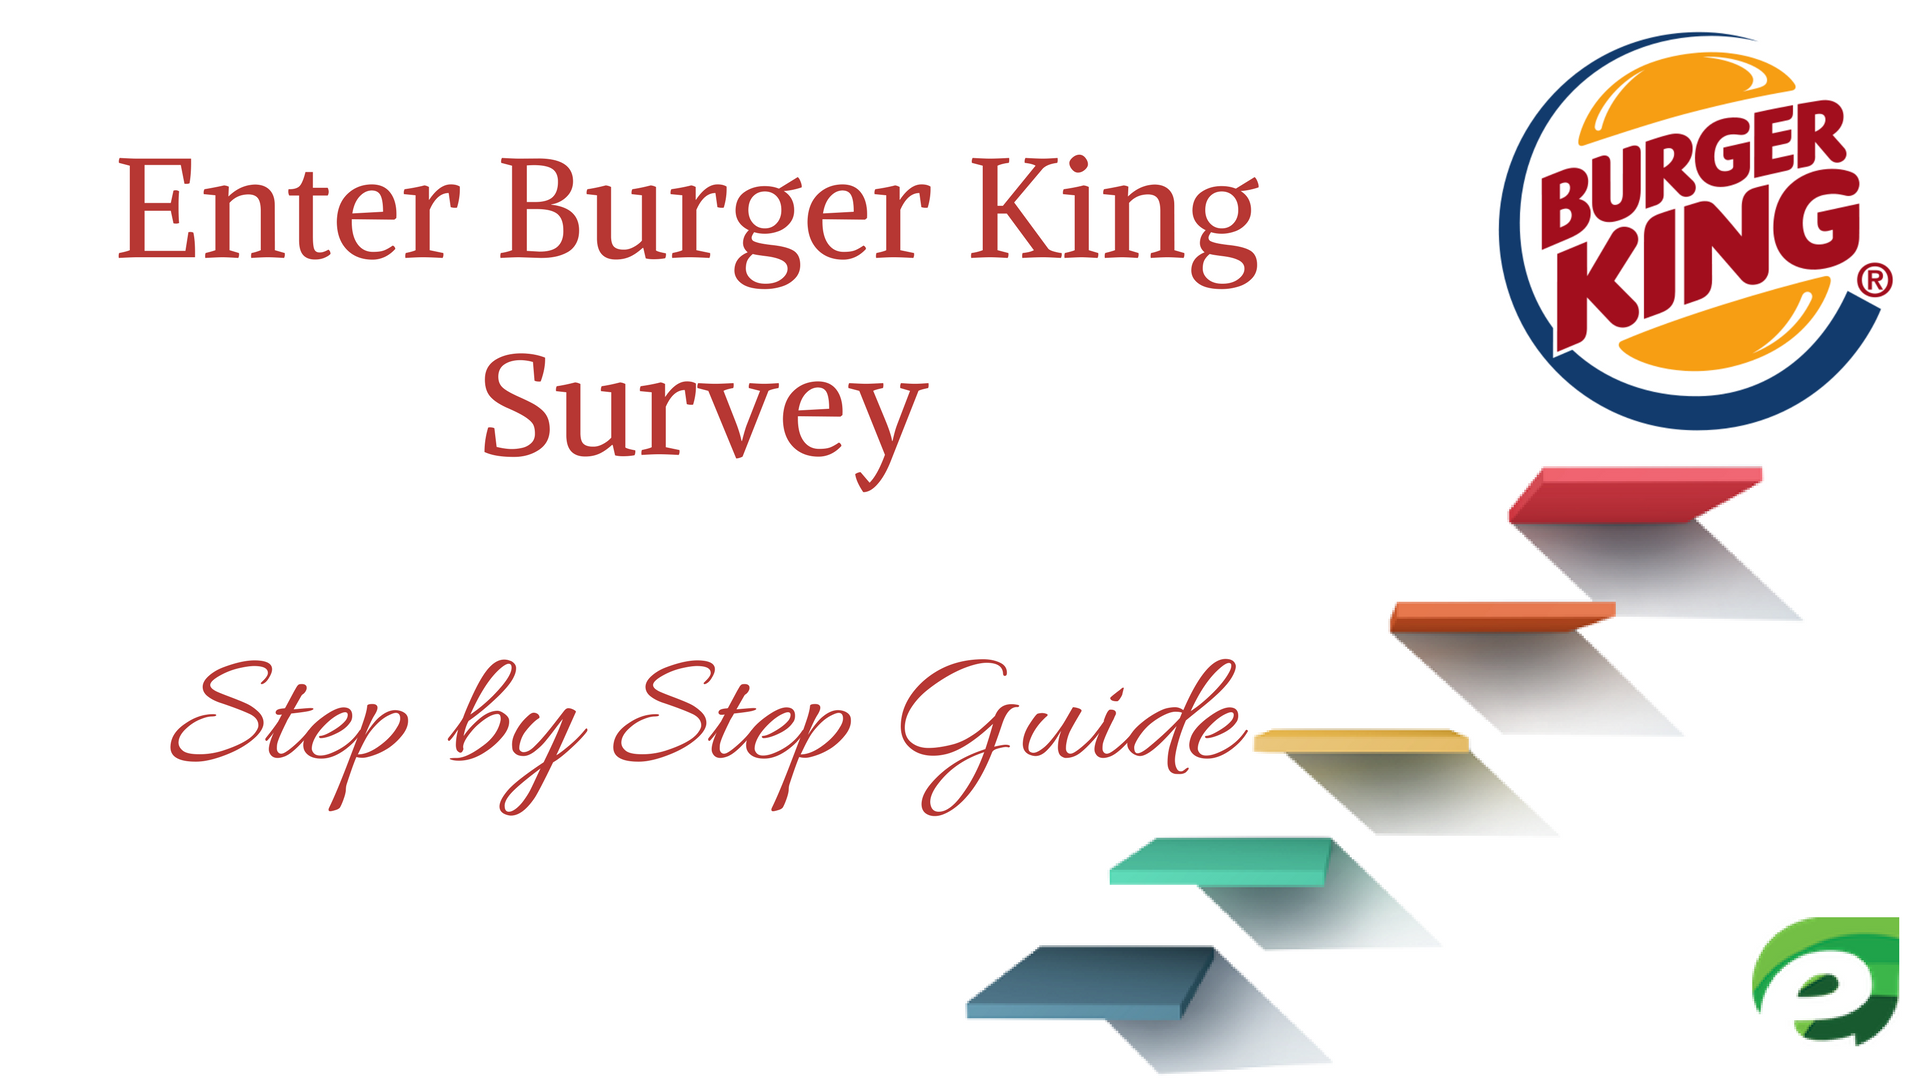 burger king result summaries questionnaire The results vindicated the company's strategy of cheaper meals and more breakfast options at the burger king chain  and market data and analysis.